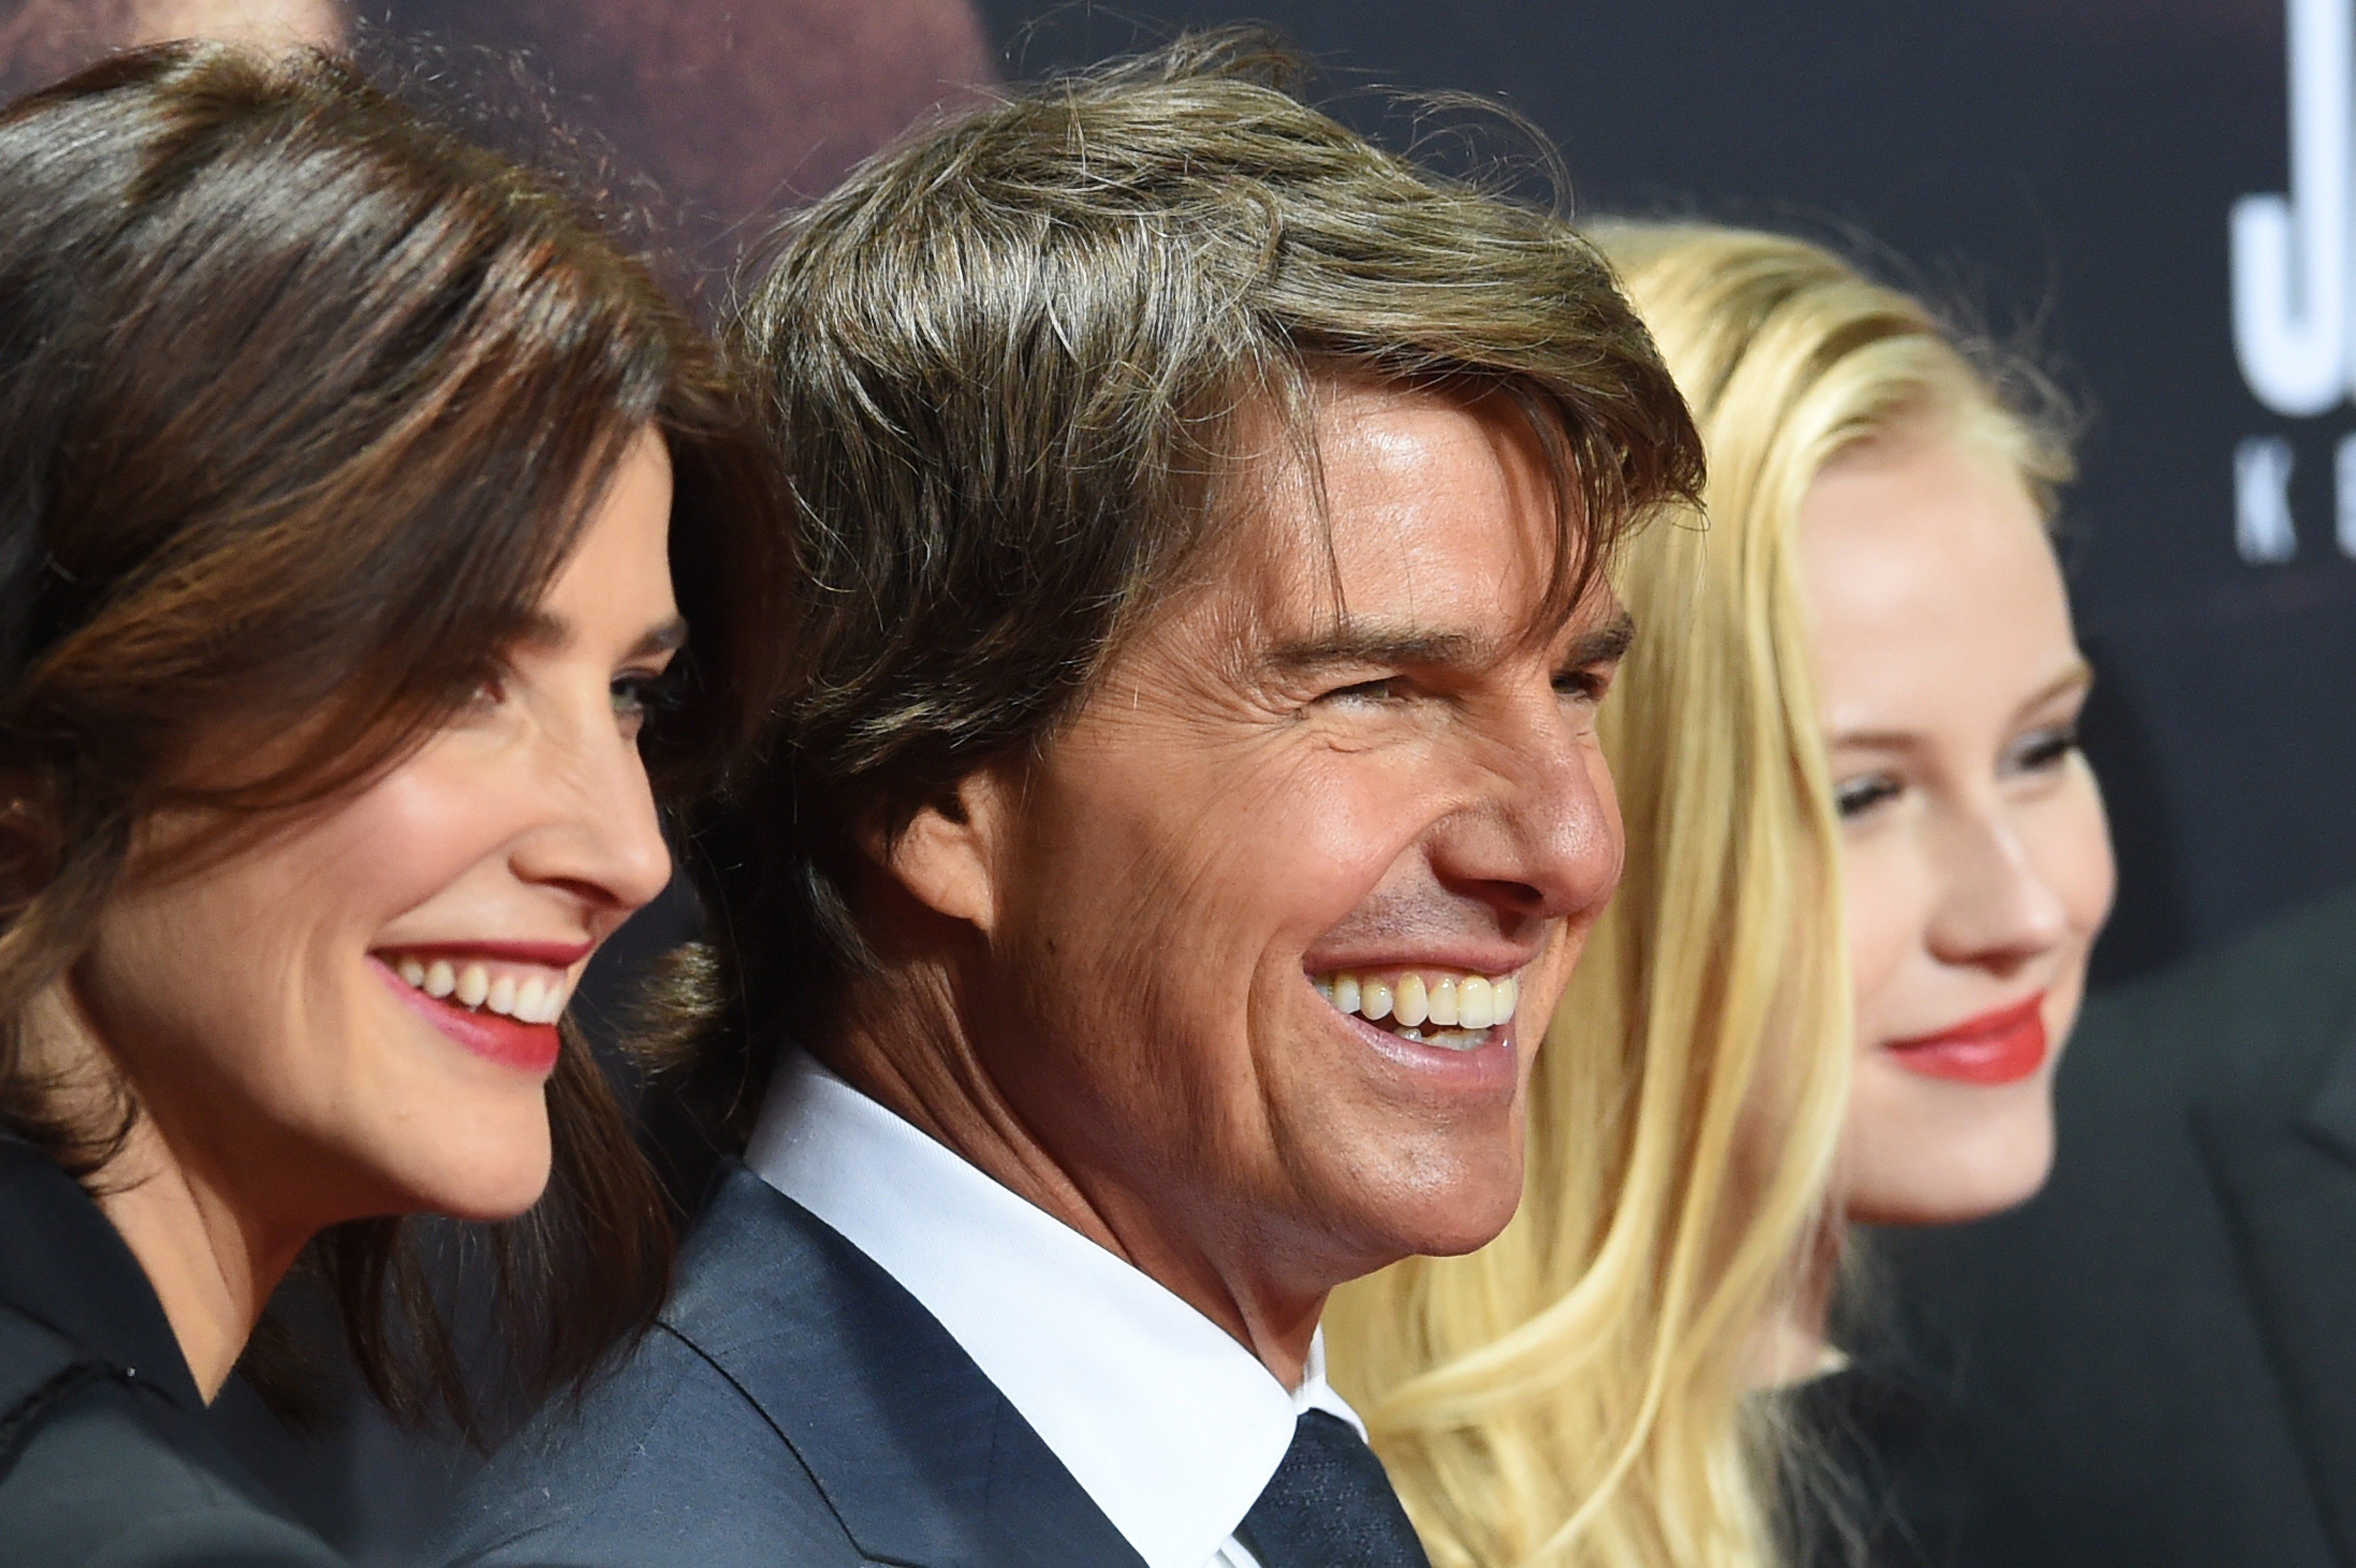 BERLIN, GERMANY - OCTOBER 21: Cobie Smulders, Tom Cruise and Danika Yarosh (L-R) attend the 'Jack Reacher: Never Go Back' Berlin Premiere at CineStar Sony Center on October 21, 2016 in Berlin, Germany. (Photo by Maurizio Gambarini/Anadolu Agency/Getty Images)